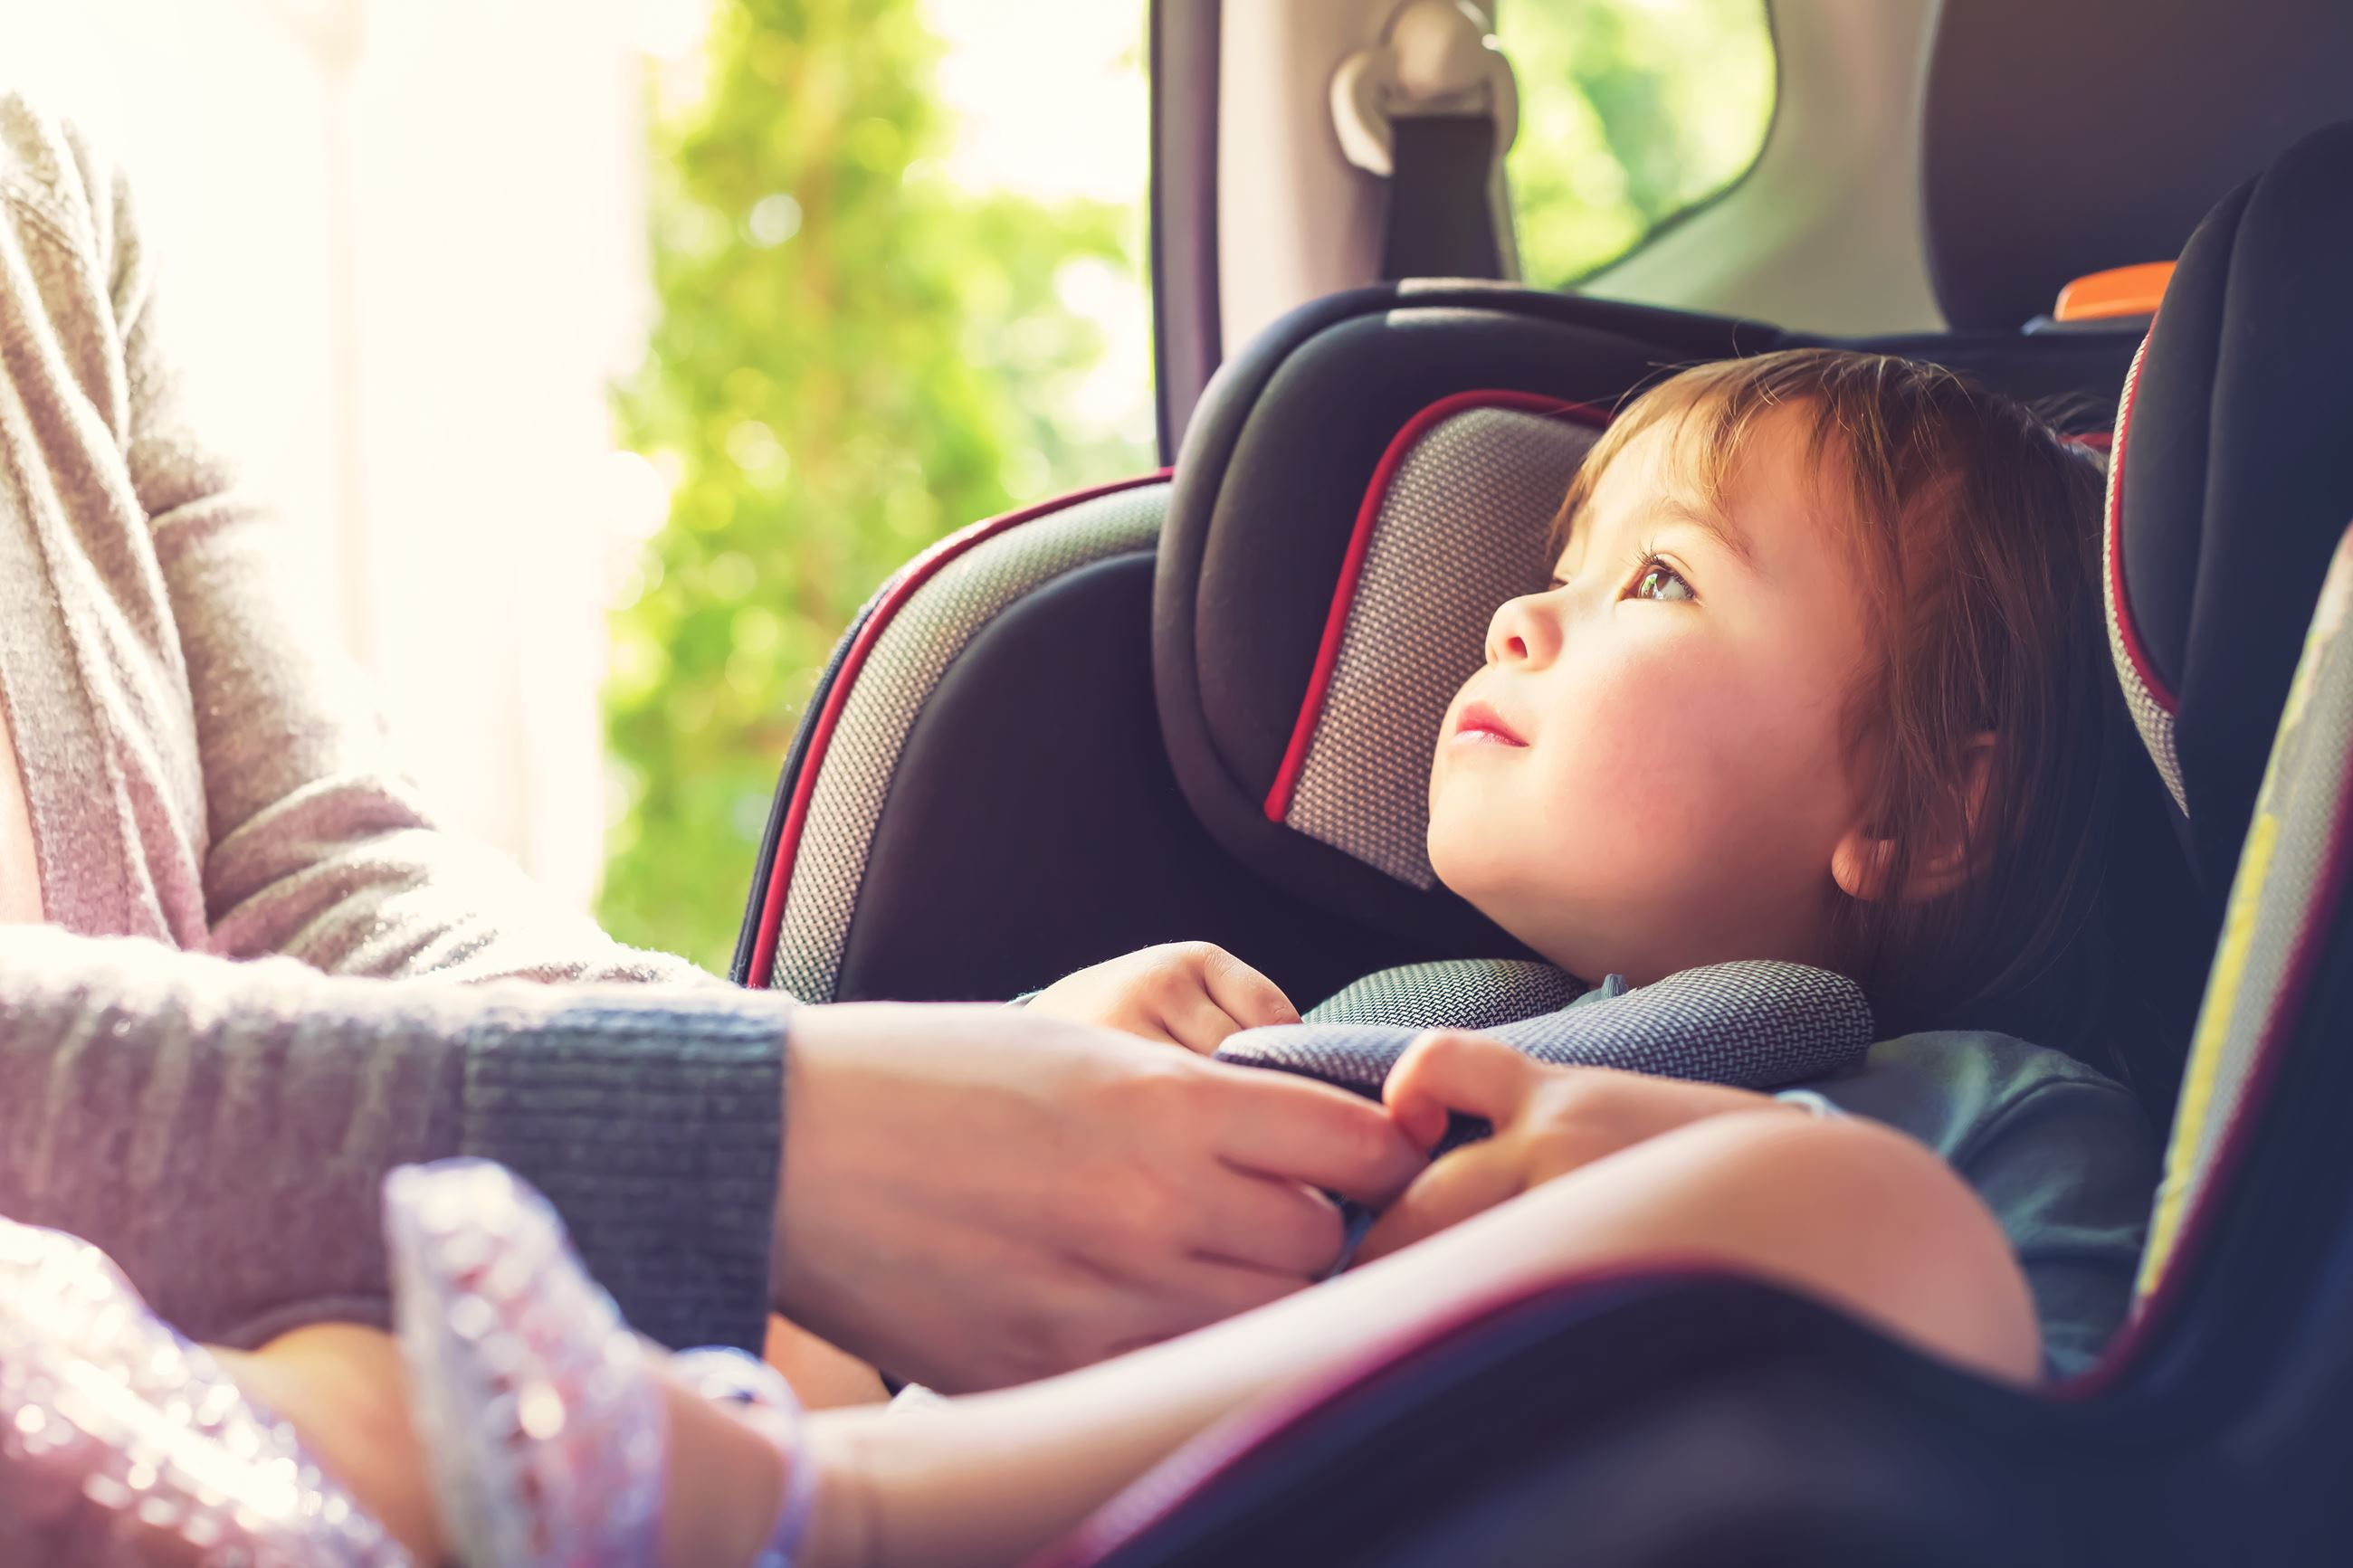 graphicstock-toddler-girl-buckled-into-her-car-seat_Hv-e7RUhNuZ